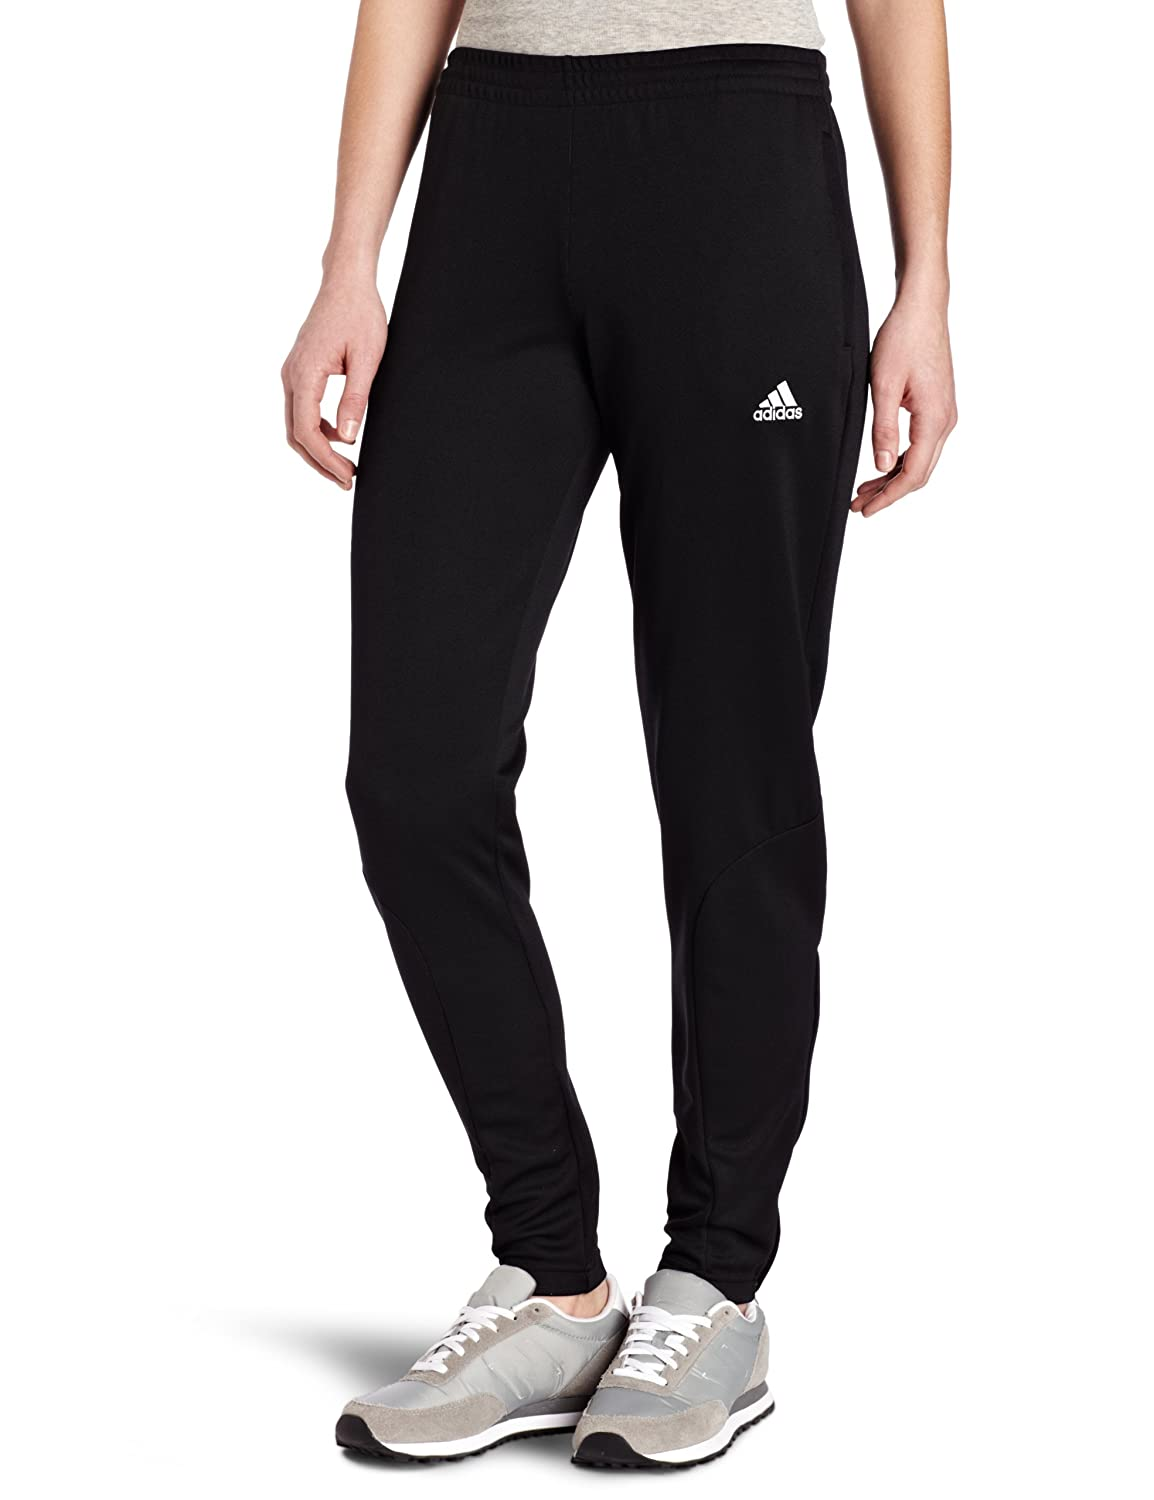 Adidas Damen Trainingsanzug Sereno 11 Basic Hose: